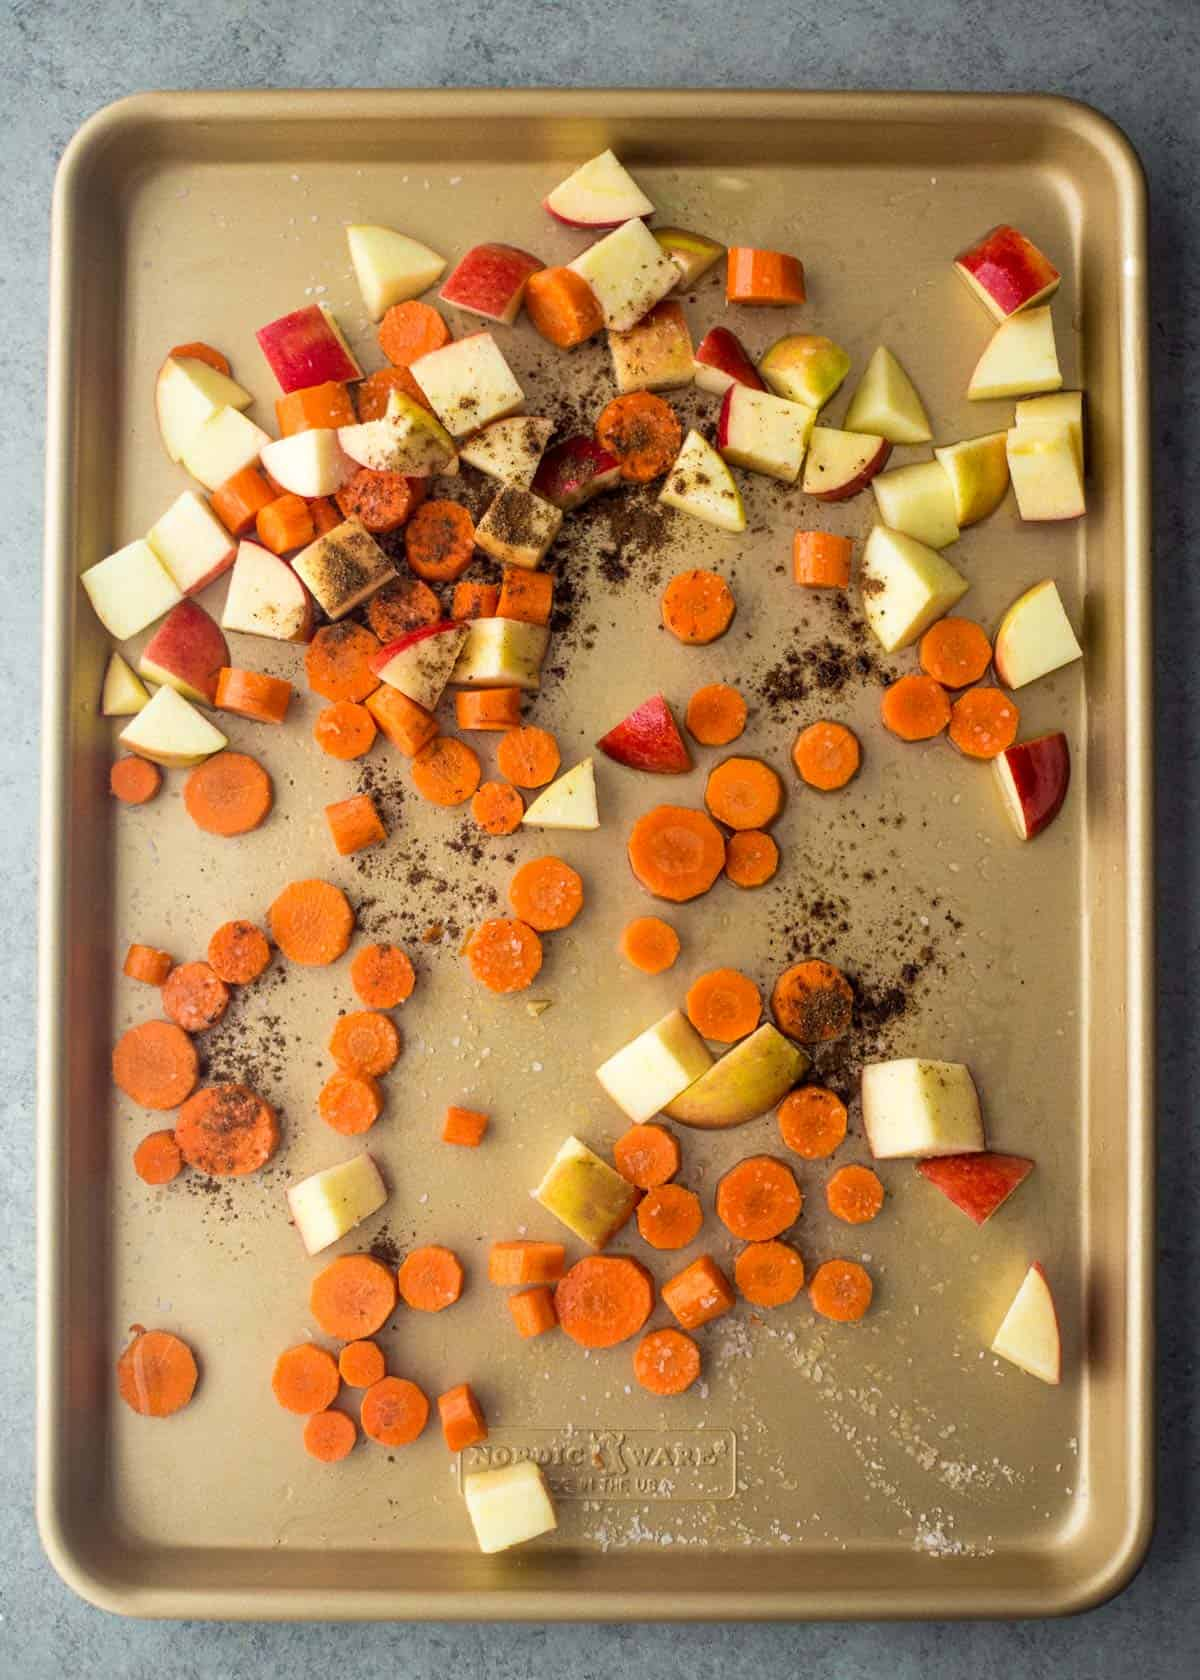 diced raw apples and carrots on a sheet pan